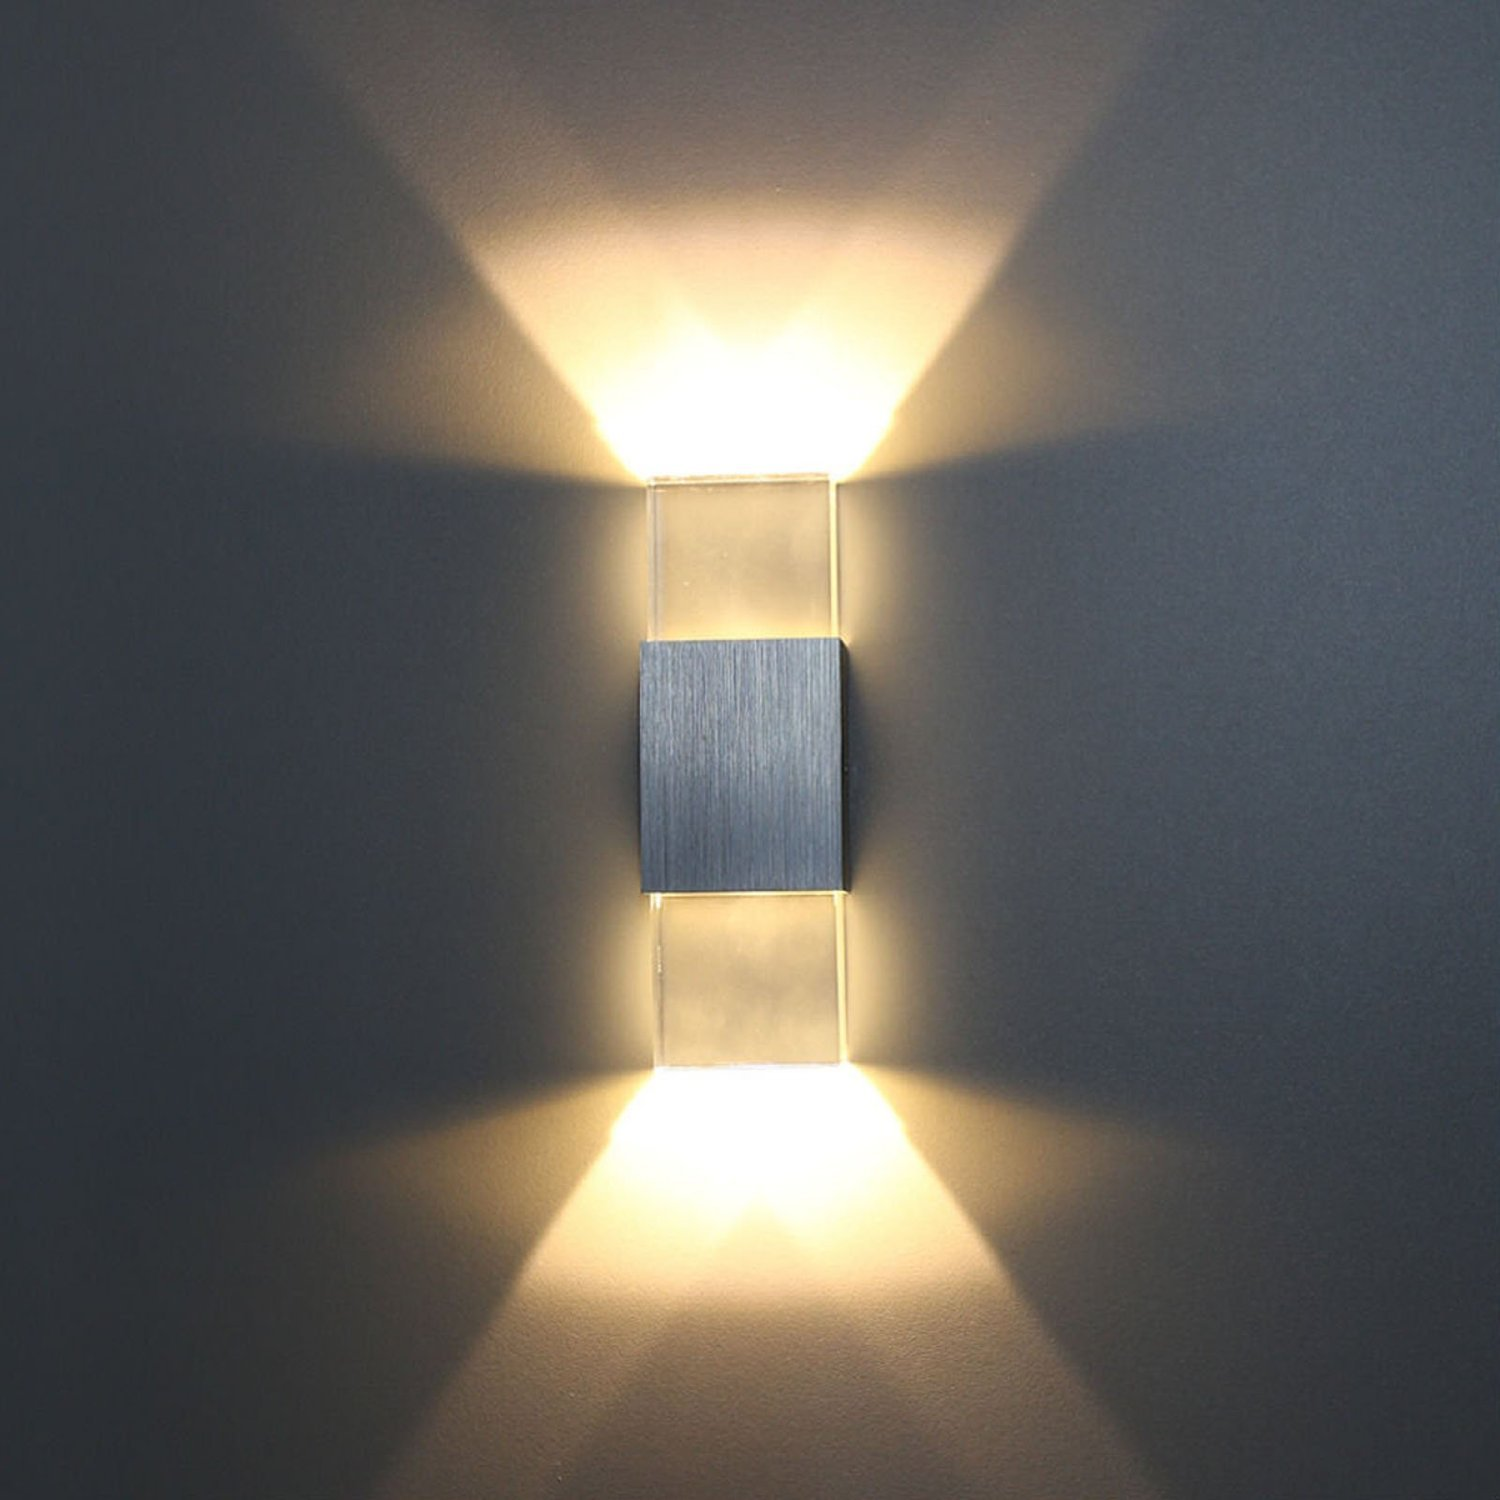 Led wall sconce sunsbell wall lamp indoor up down ligting fixtures led wall sconce sunsbell wall lamp indoor up down ligting fixtures acrylic wall light amazon aloadofball Image collections